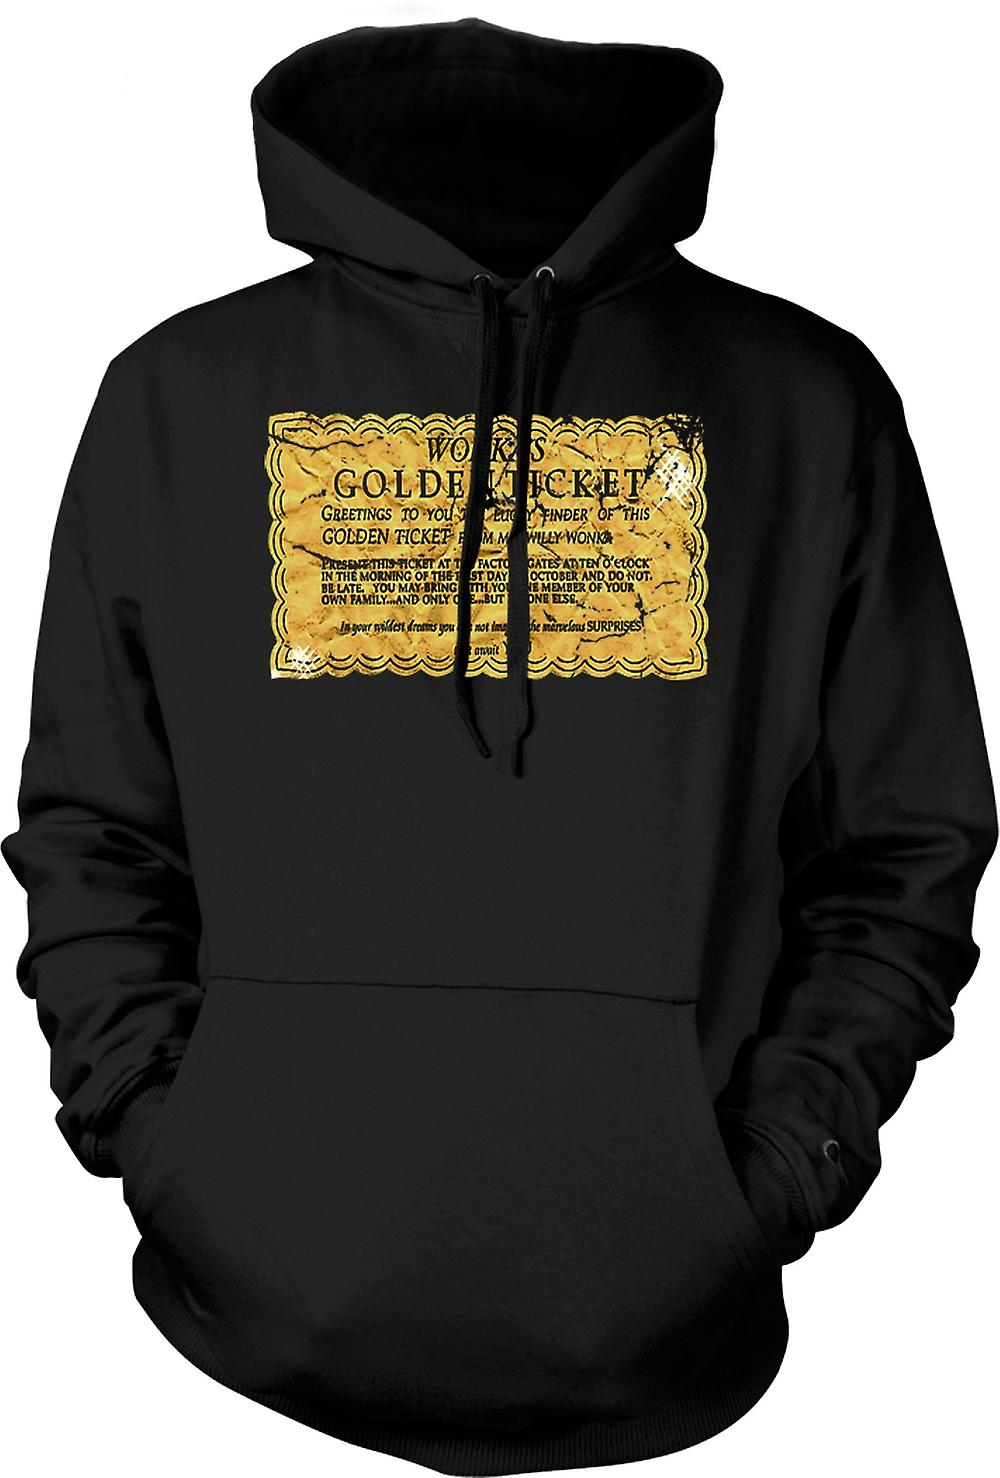 Para hombre con capucha - Willy Wonka Golden Ticket - gracioso